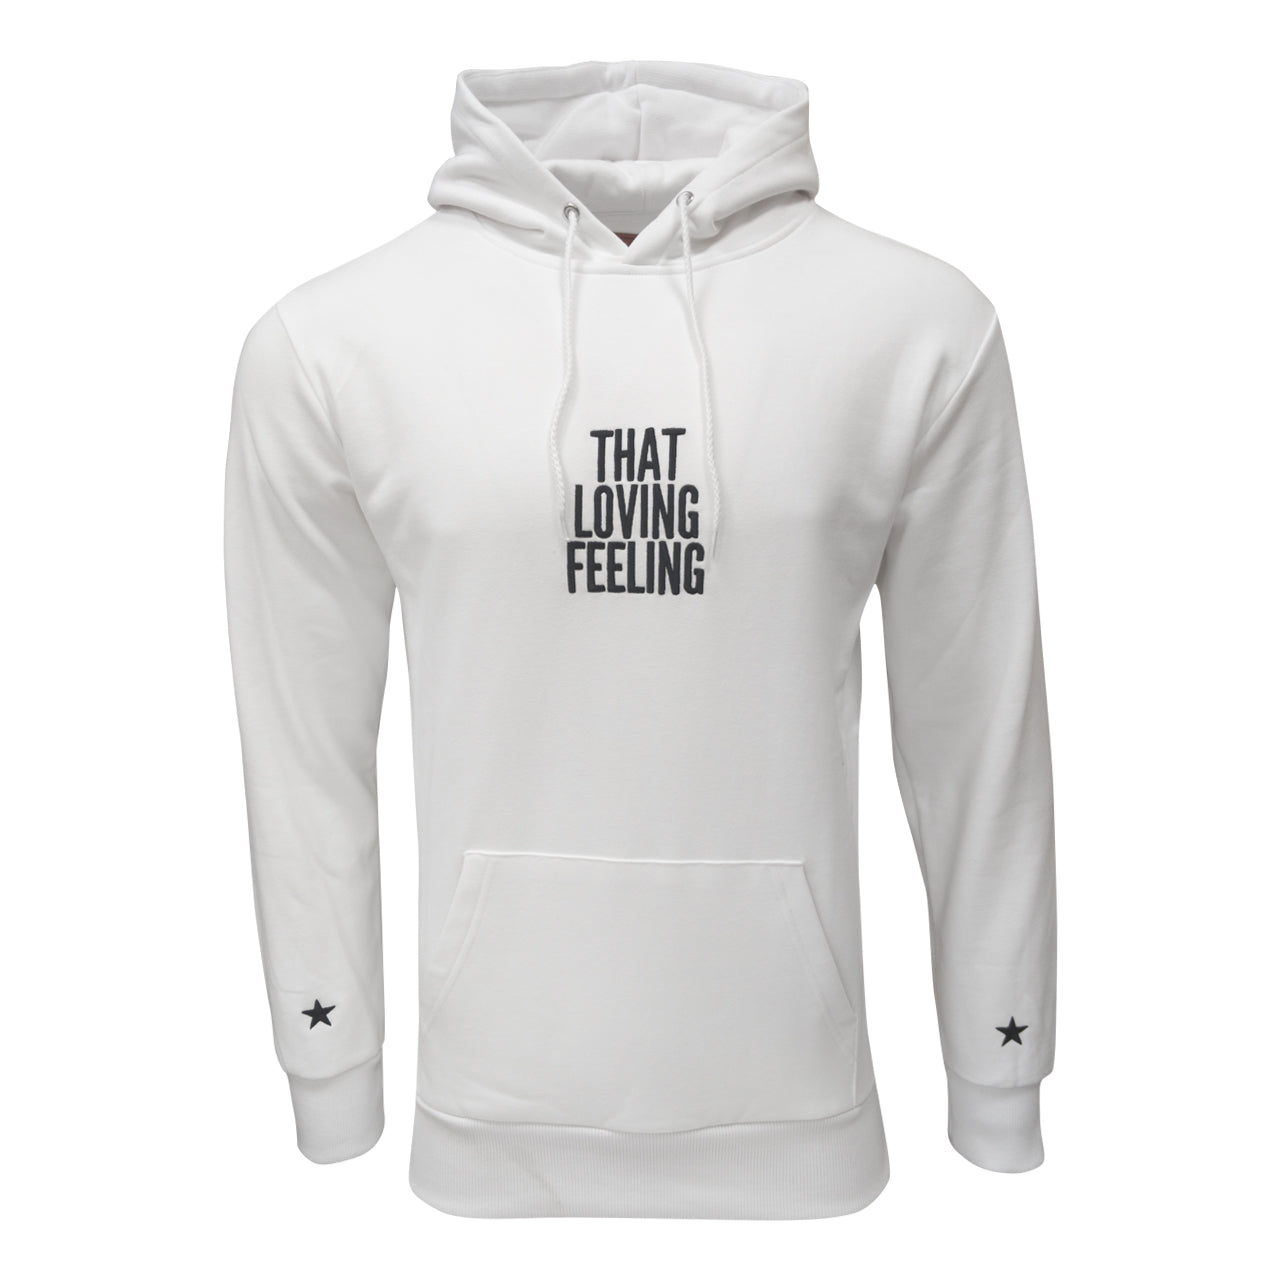 NFFC Mens White Loving Feeling Hoodie - Nottingham Forest